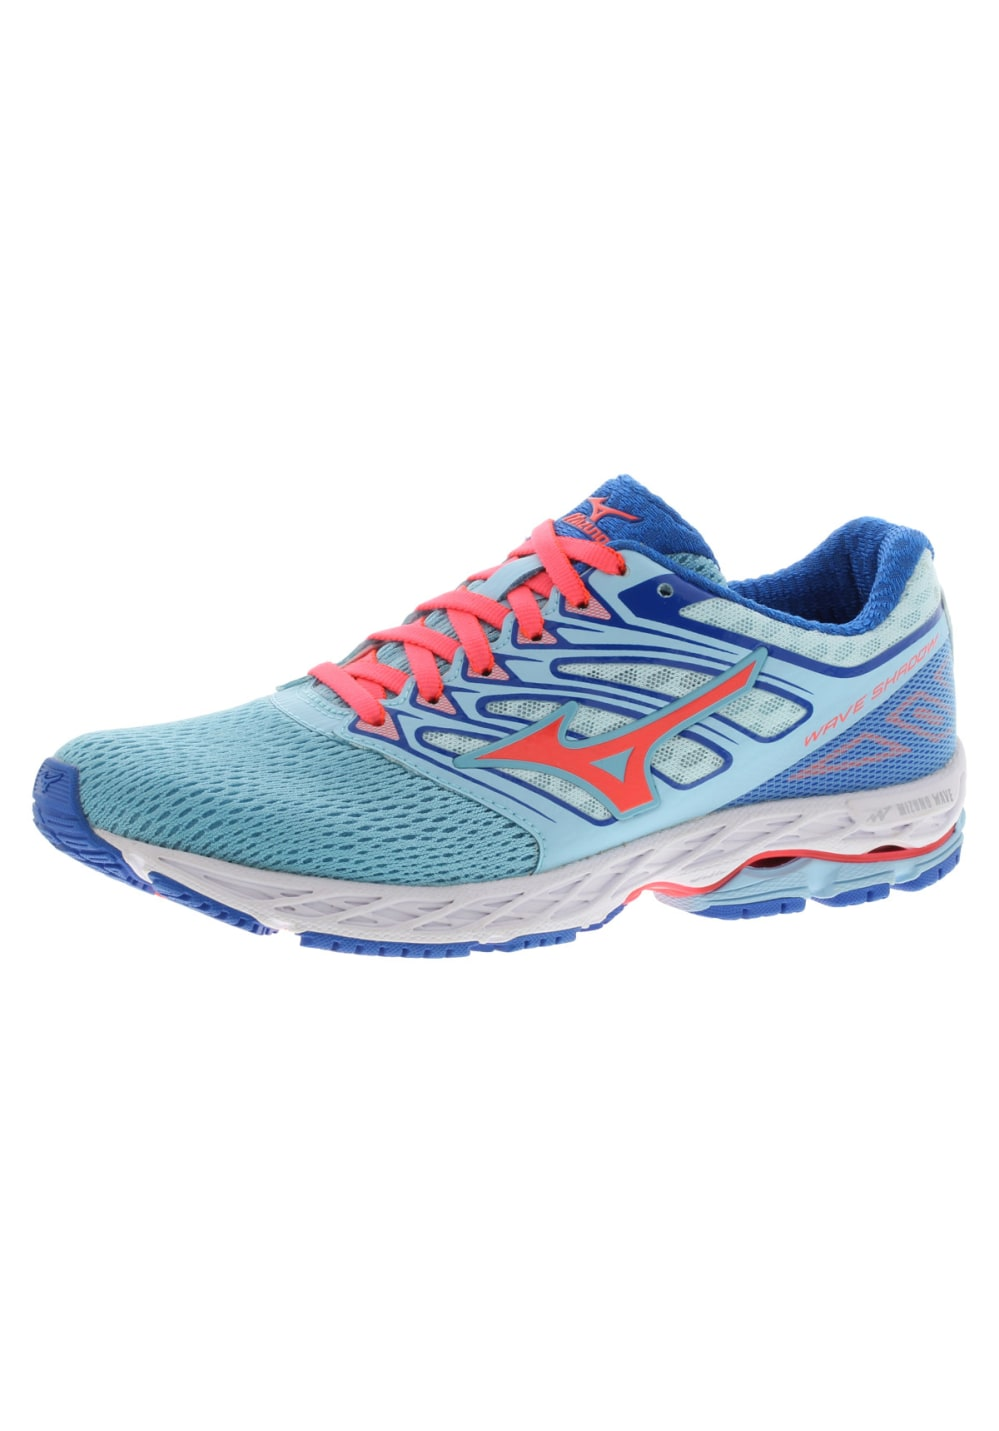 Next. -60%. Mizuno. Wave Shadow - Running shoes for Women 19468579c